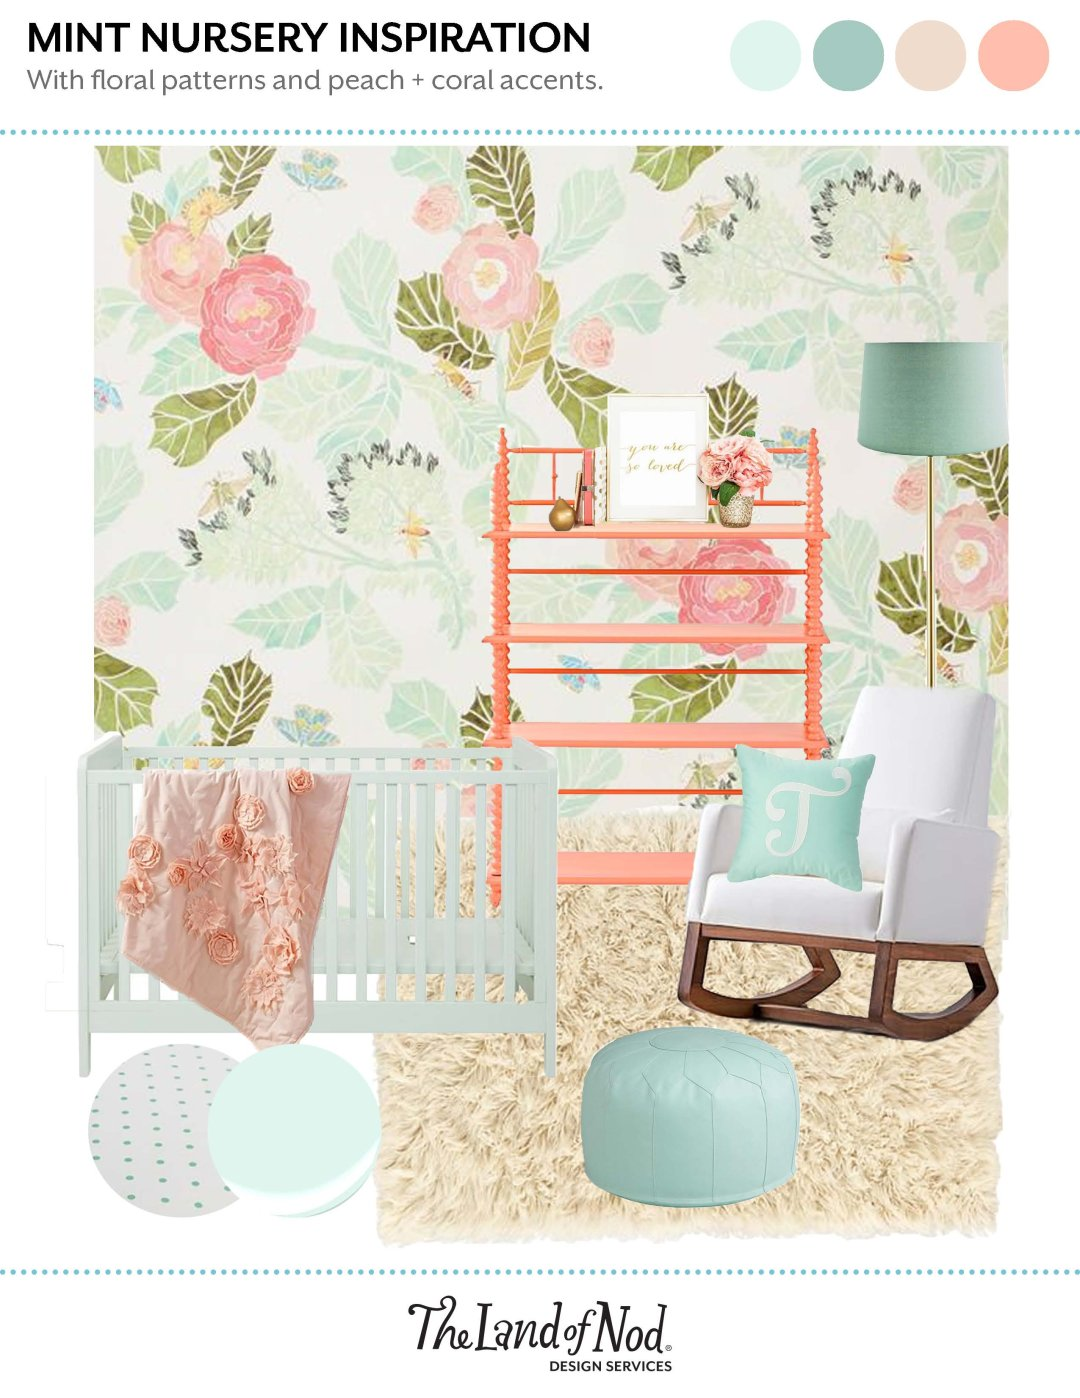 Mint Nursery Inspiration for Baby Girl